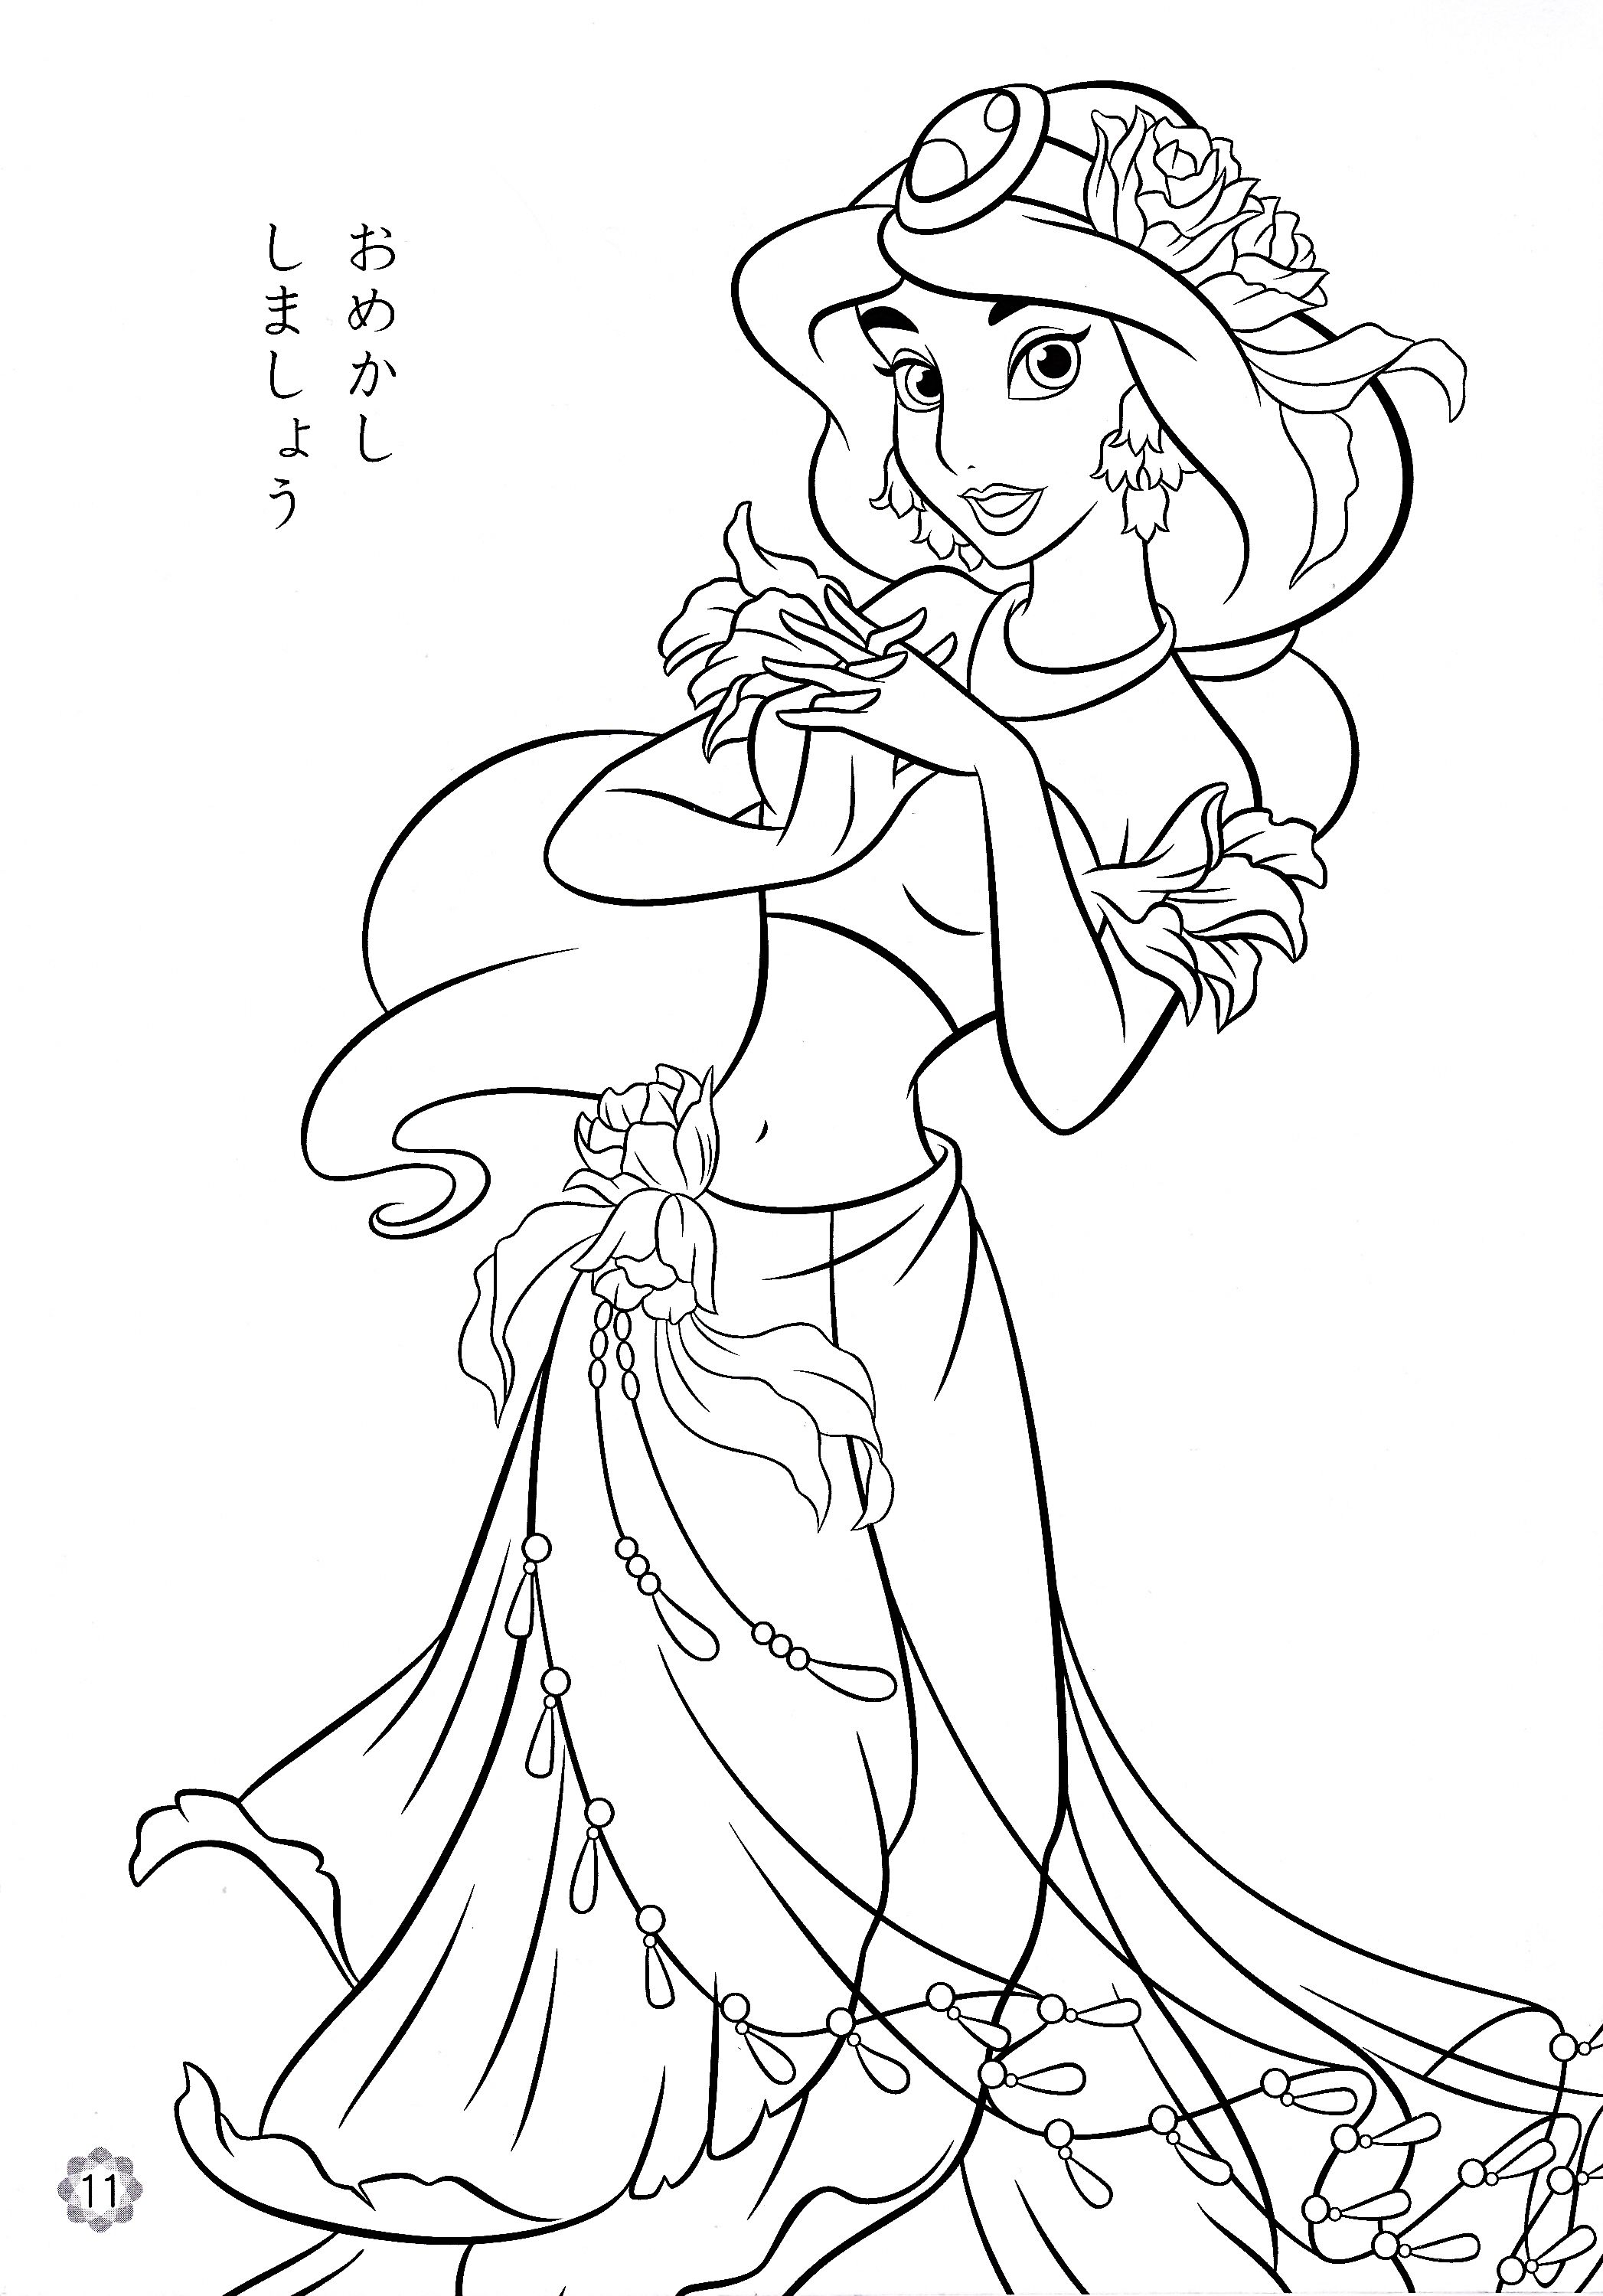 Latest Coloring Pages Archives Page 10 Of 27 Coloring Pages Baby Princess Coloring Disney Princess Coloring Pages Mermaid Coloring Pages Disney Coloring Pages